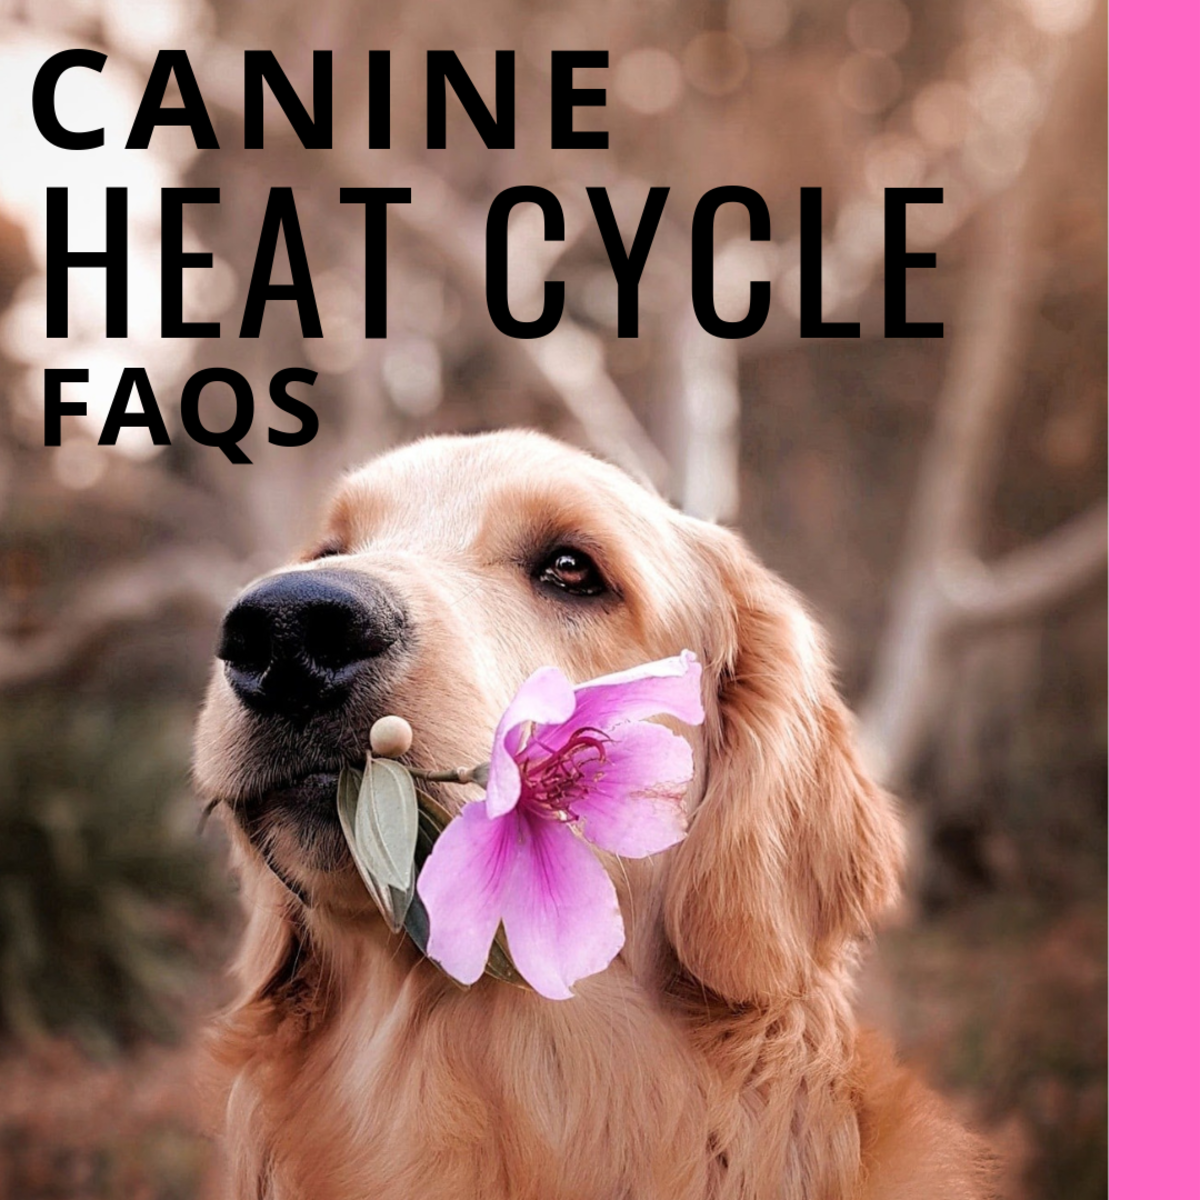 Canine Heat Cycle Stages